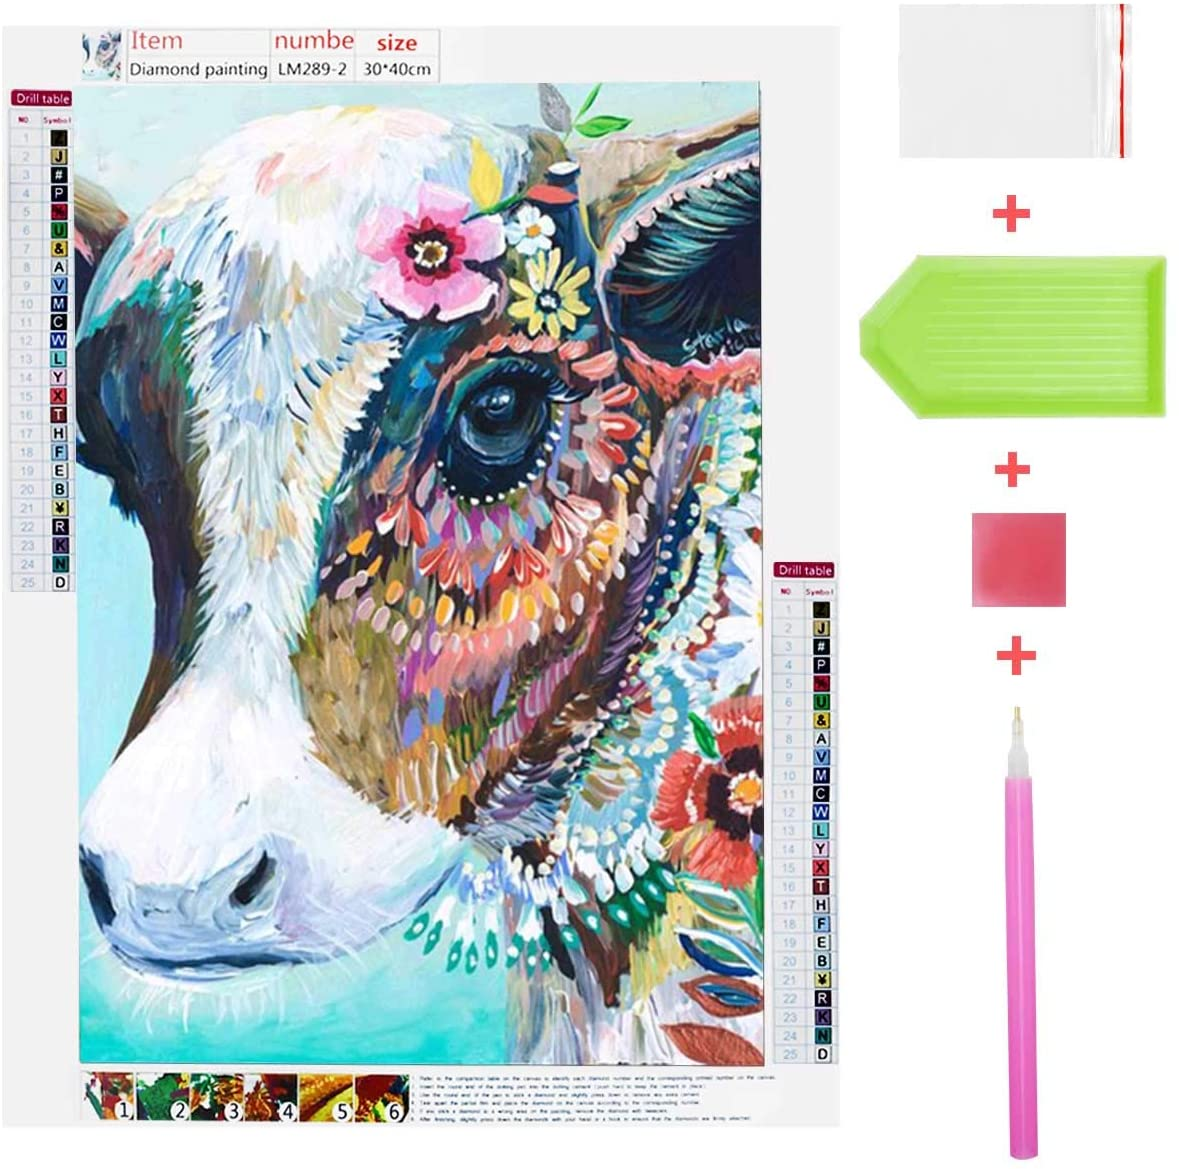 5D Diamond Painting Kits DIY Full Drill Diamond Painting Kits for Adults Cow Diamond Arts Painting Home Wall Decor Colorful Cow Rhinestone Embroidery Cross Stitch Picture Art Craft Paint by Number Kit